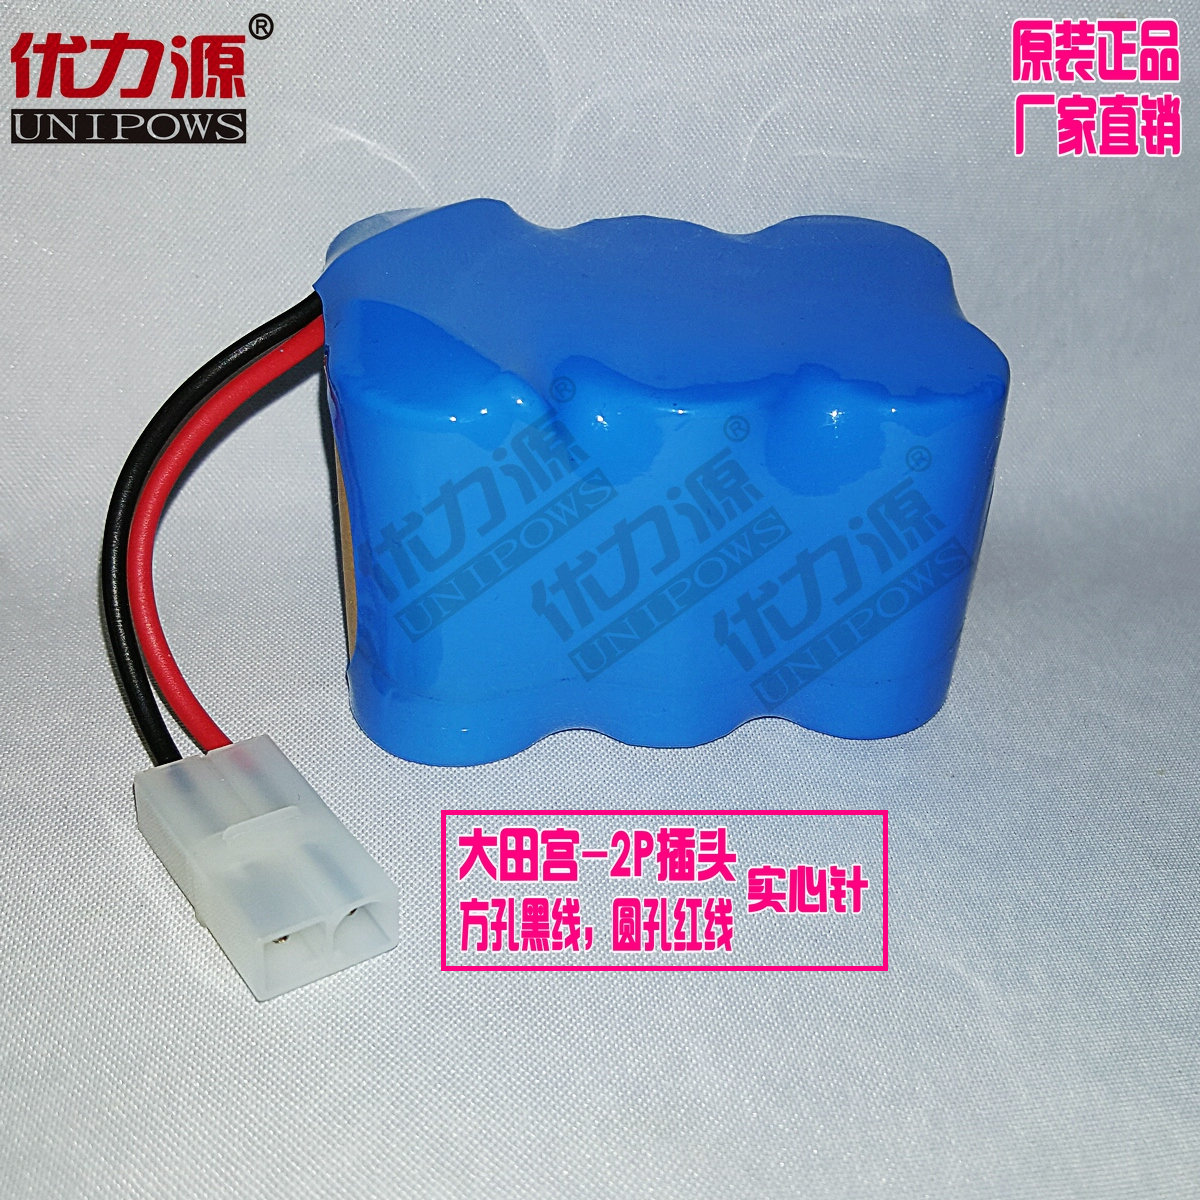 Excellent source of battery 3.6v800 mah 9000 mah ni-mh battery pack sc 10c high rate battery double